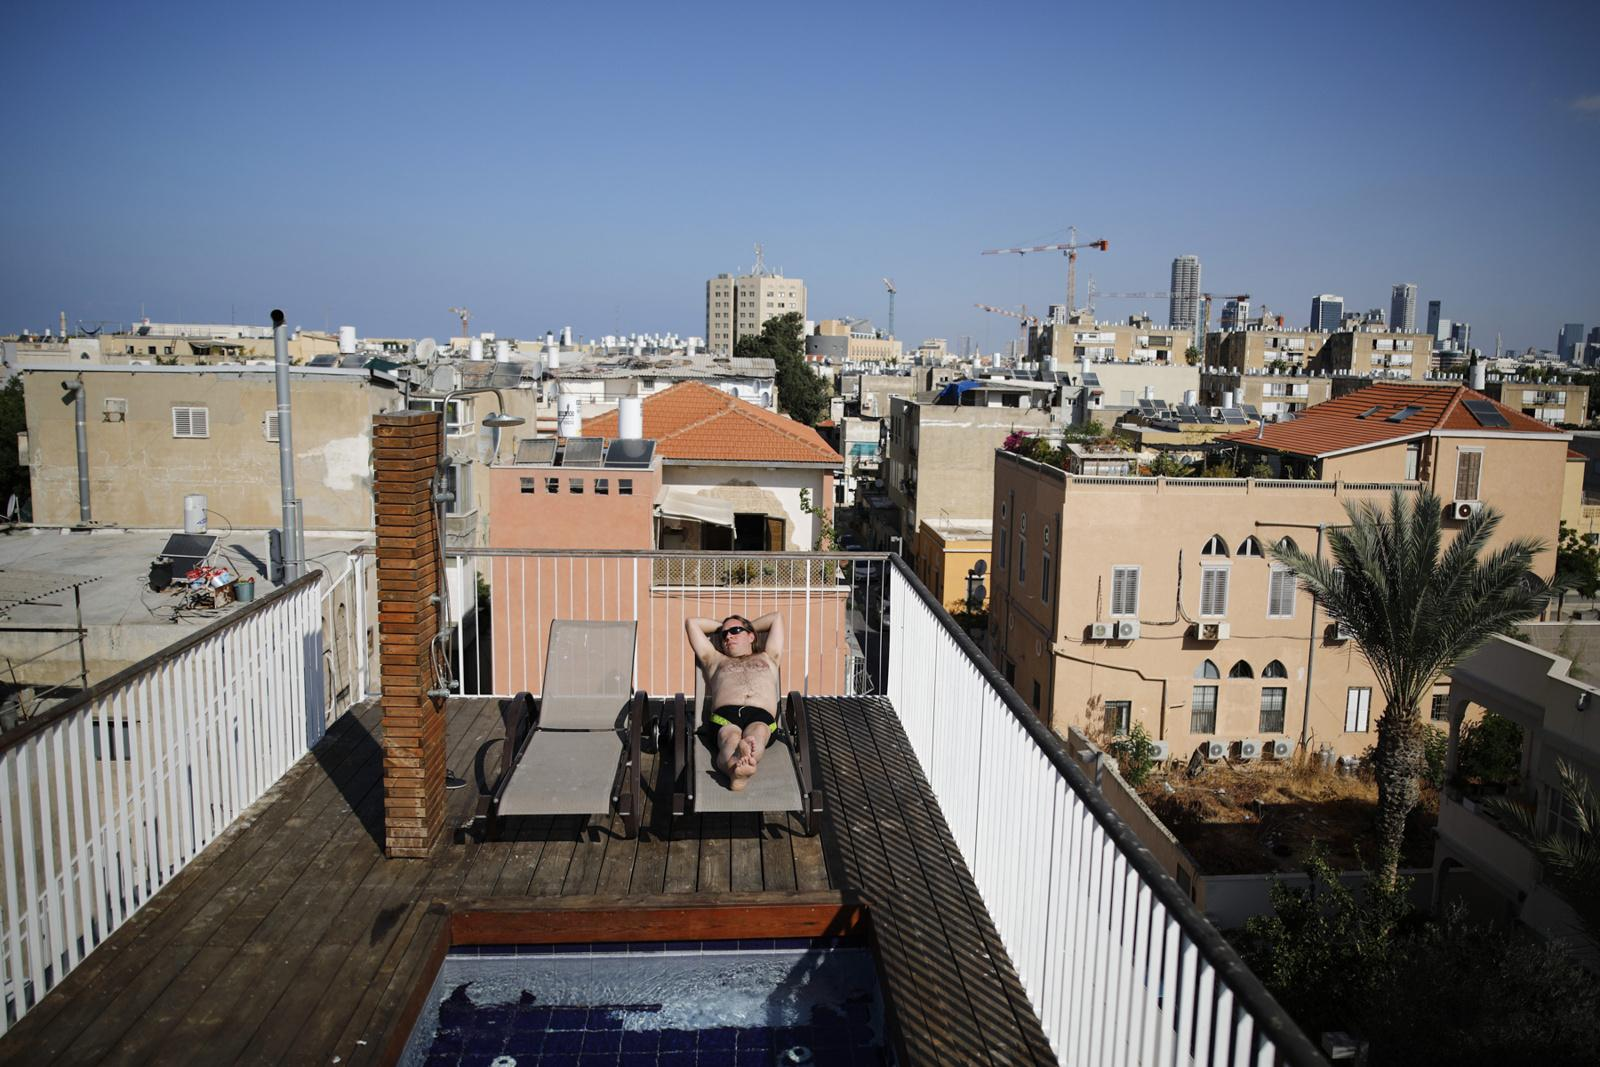 Aviah Morag, 35, relaxes on his rooftop in Yafo, equipped with a small pool, shower and sun loungers, November 10, 2017, Tel Aviv, Israel.